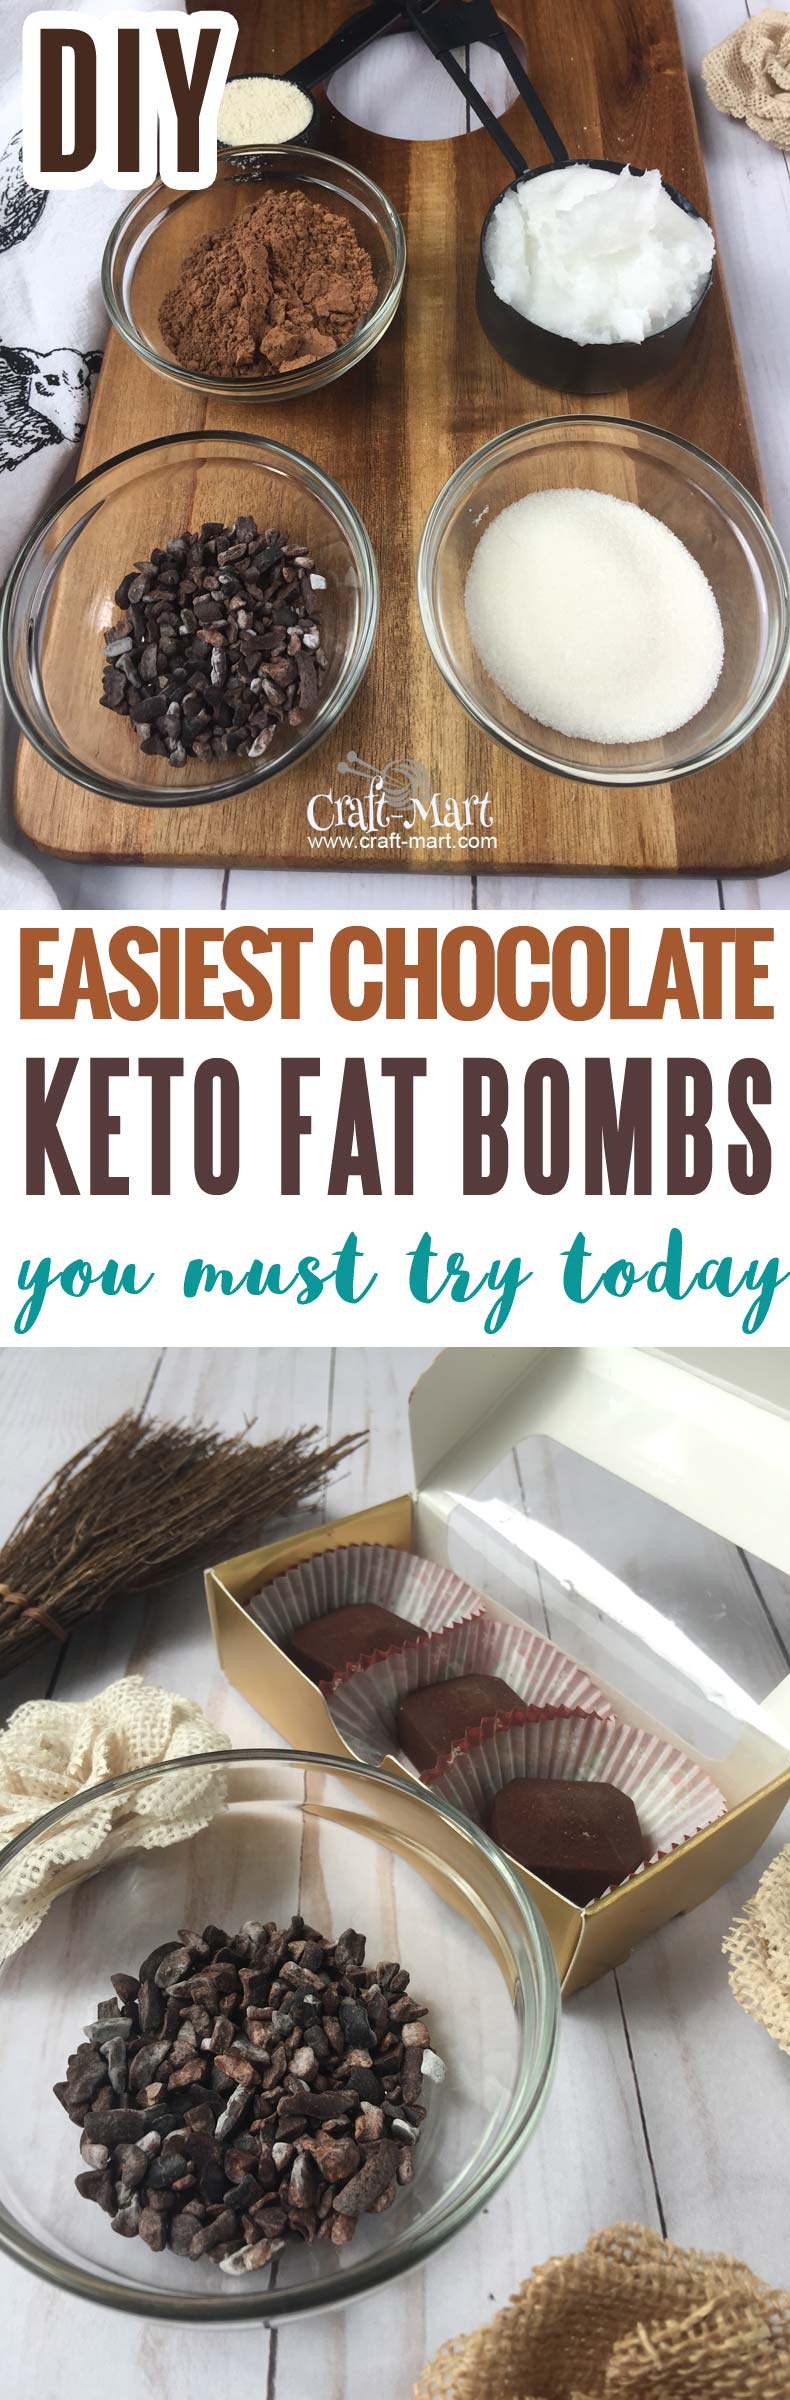 chocolate keto fat bombs - easy meal prep ideas #ketosnack #ketodiet #ketofatbomb